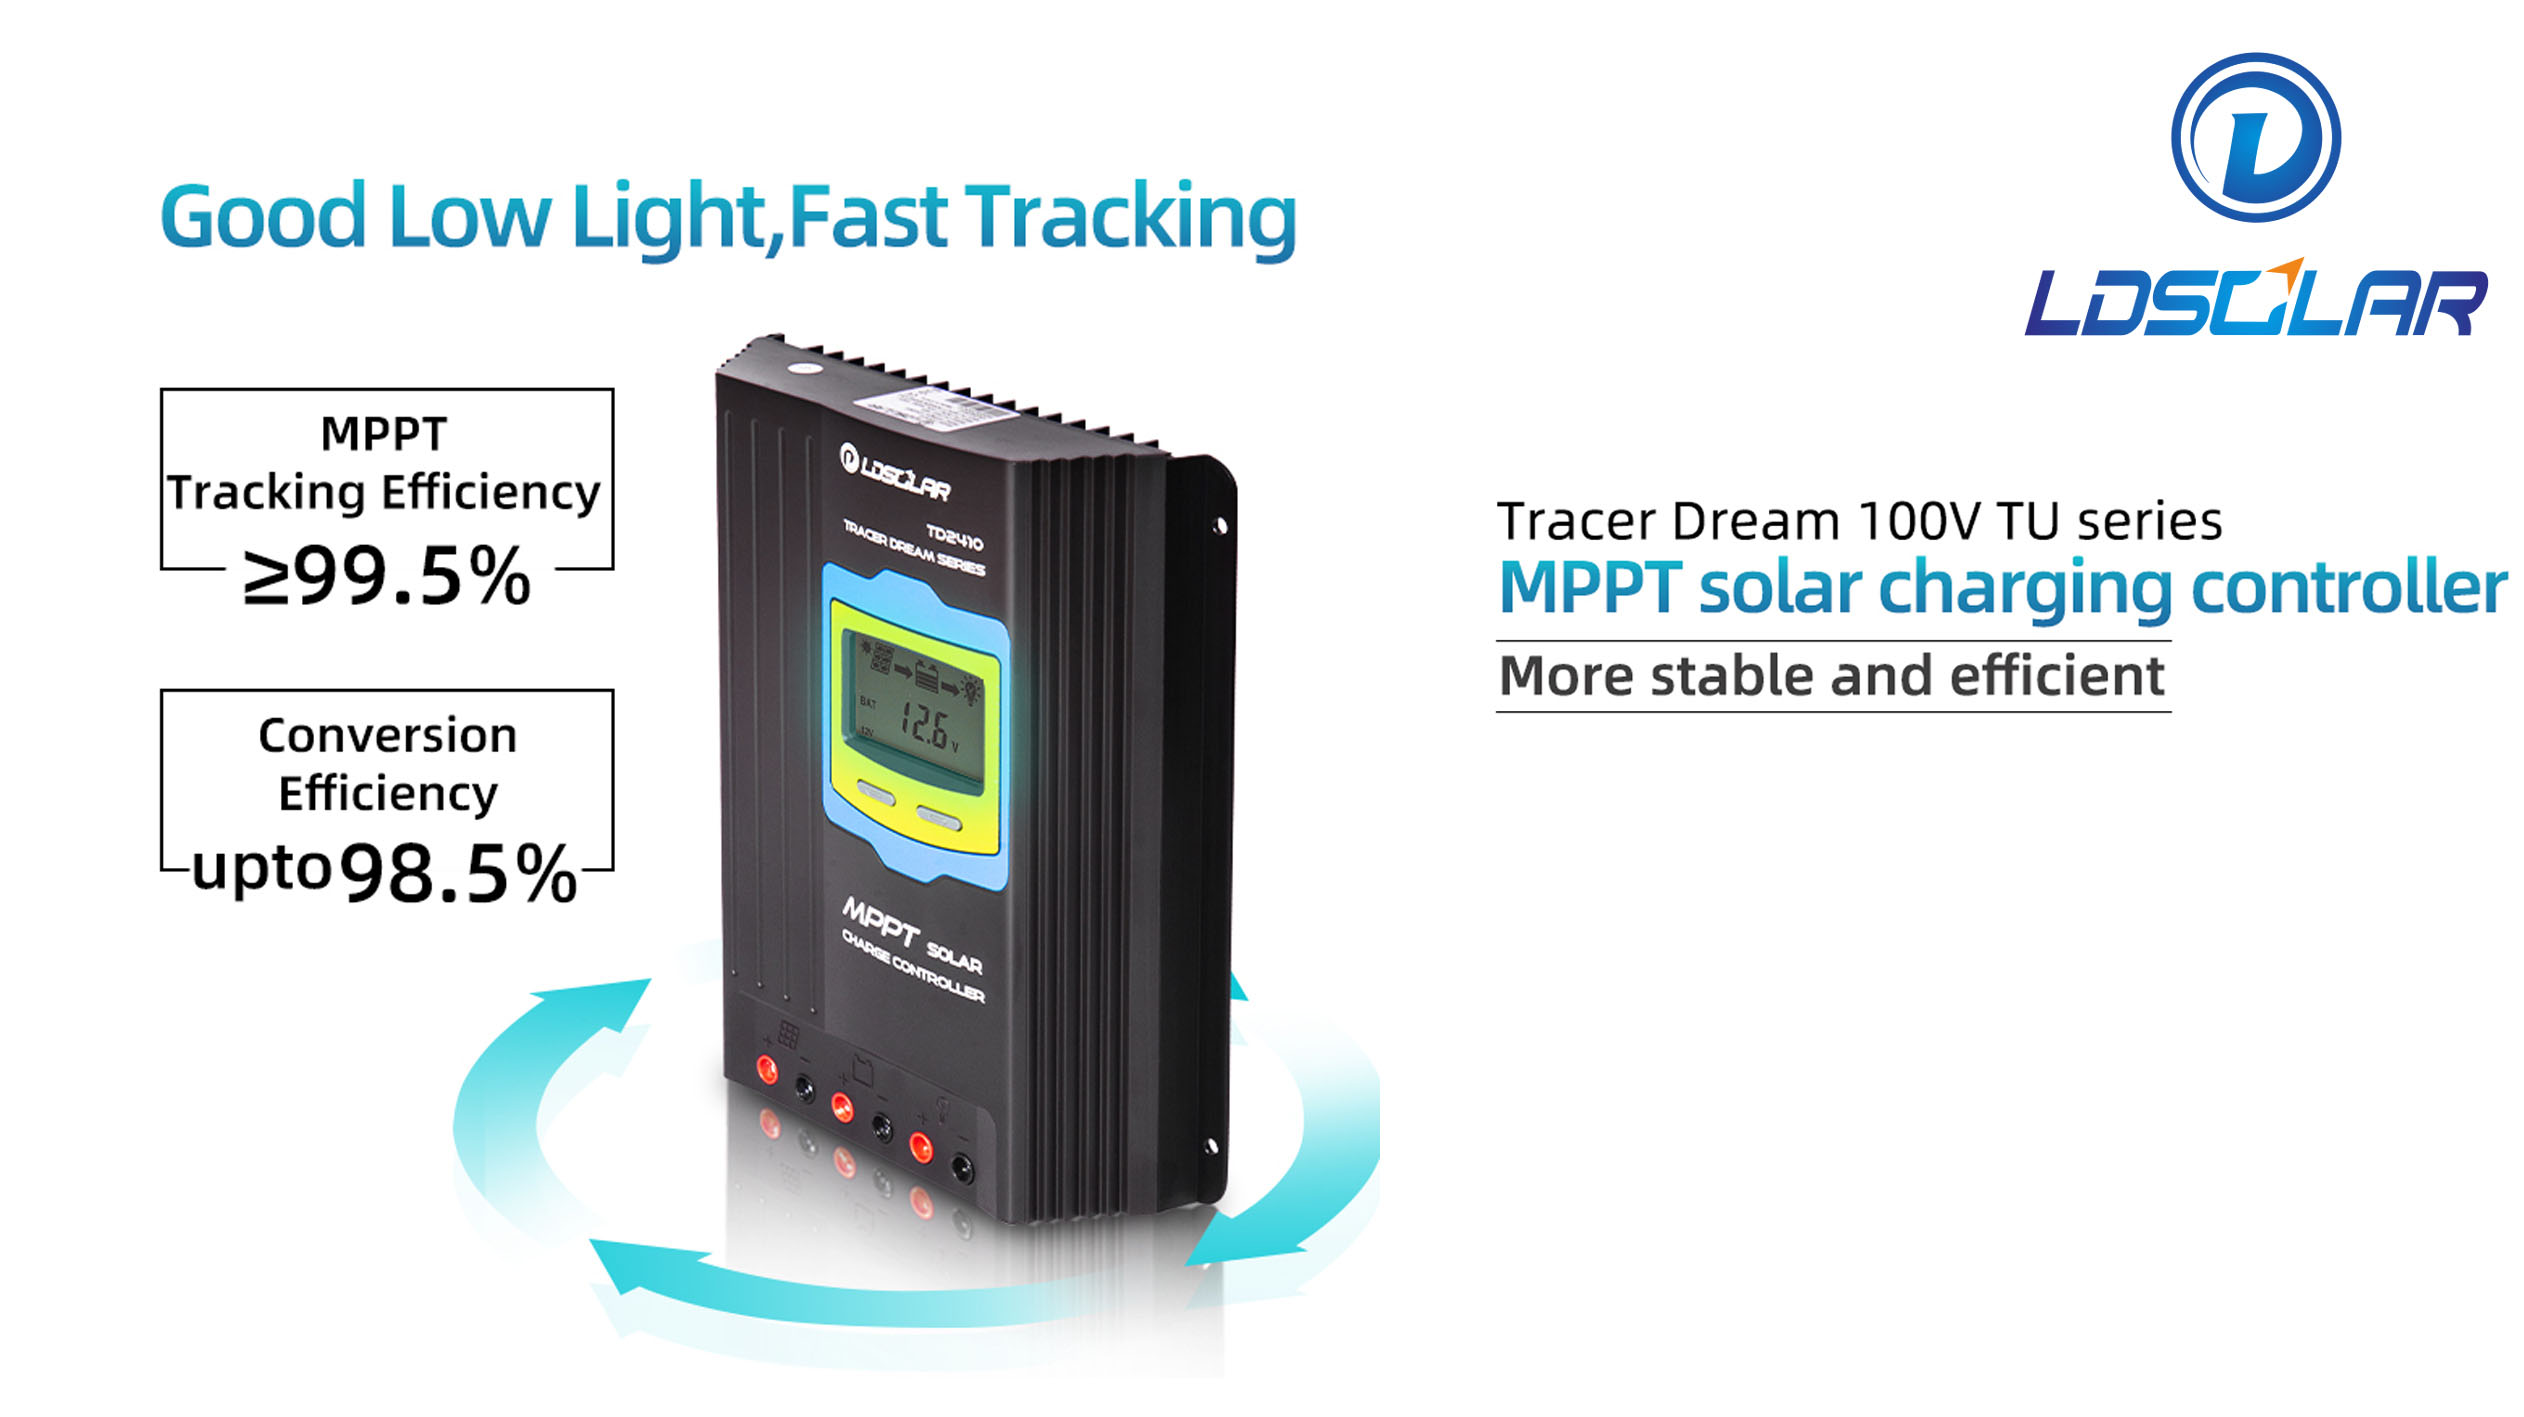 Tracer Dream 100V TU Series MPPT Solar Charge Controller